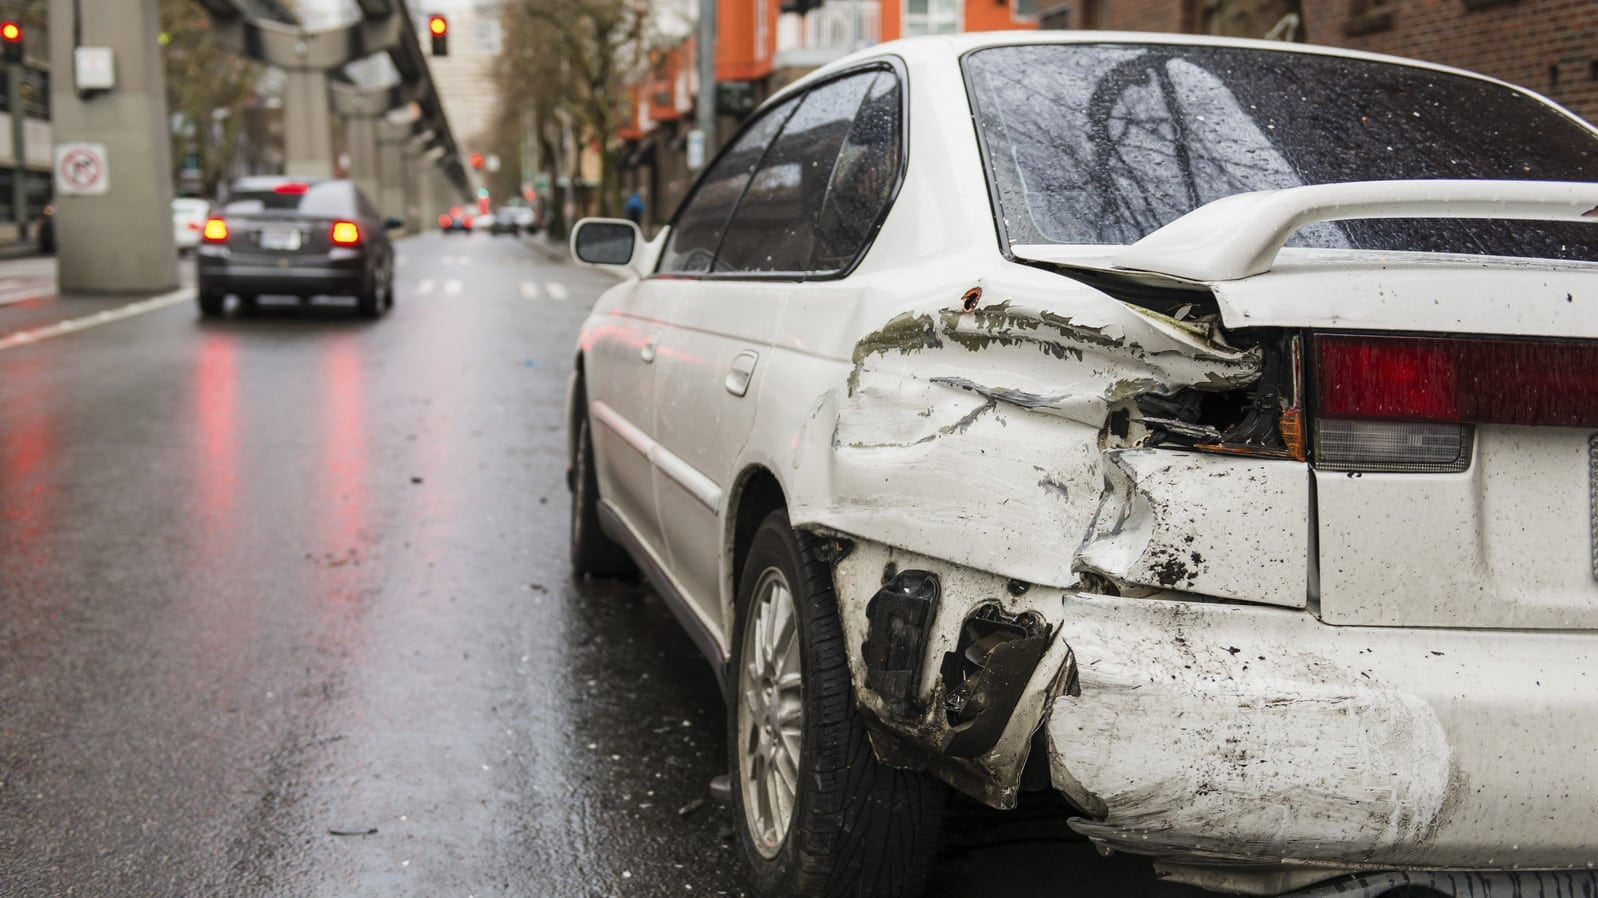 Hit and Run Car Accident Aftermath Stock Photo